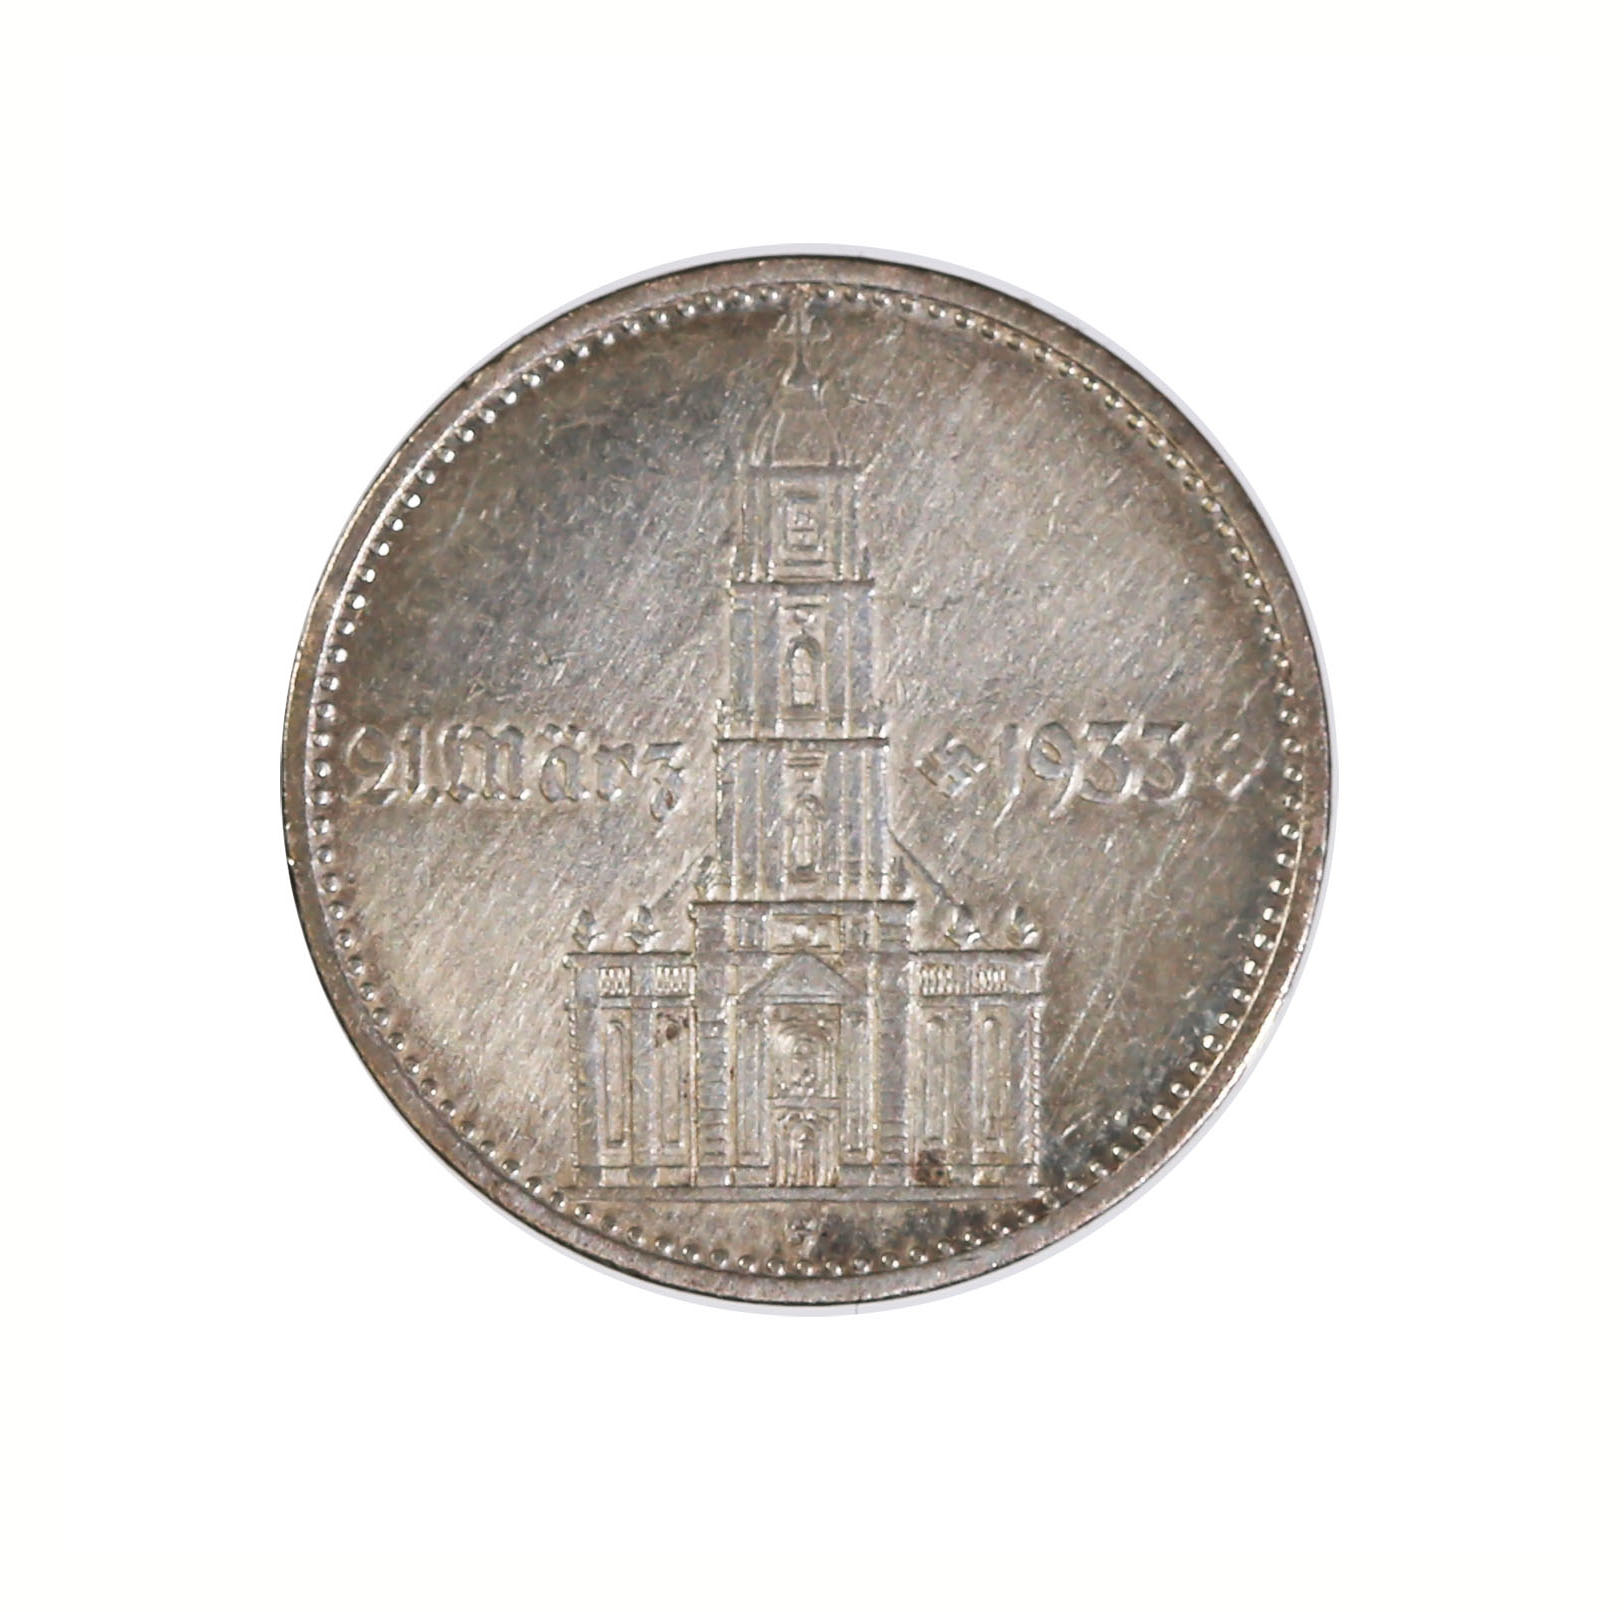 Germany 2 reichsmark 1934 Potsdam Chuch with date